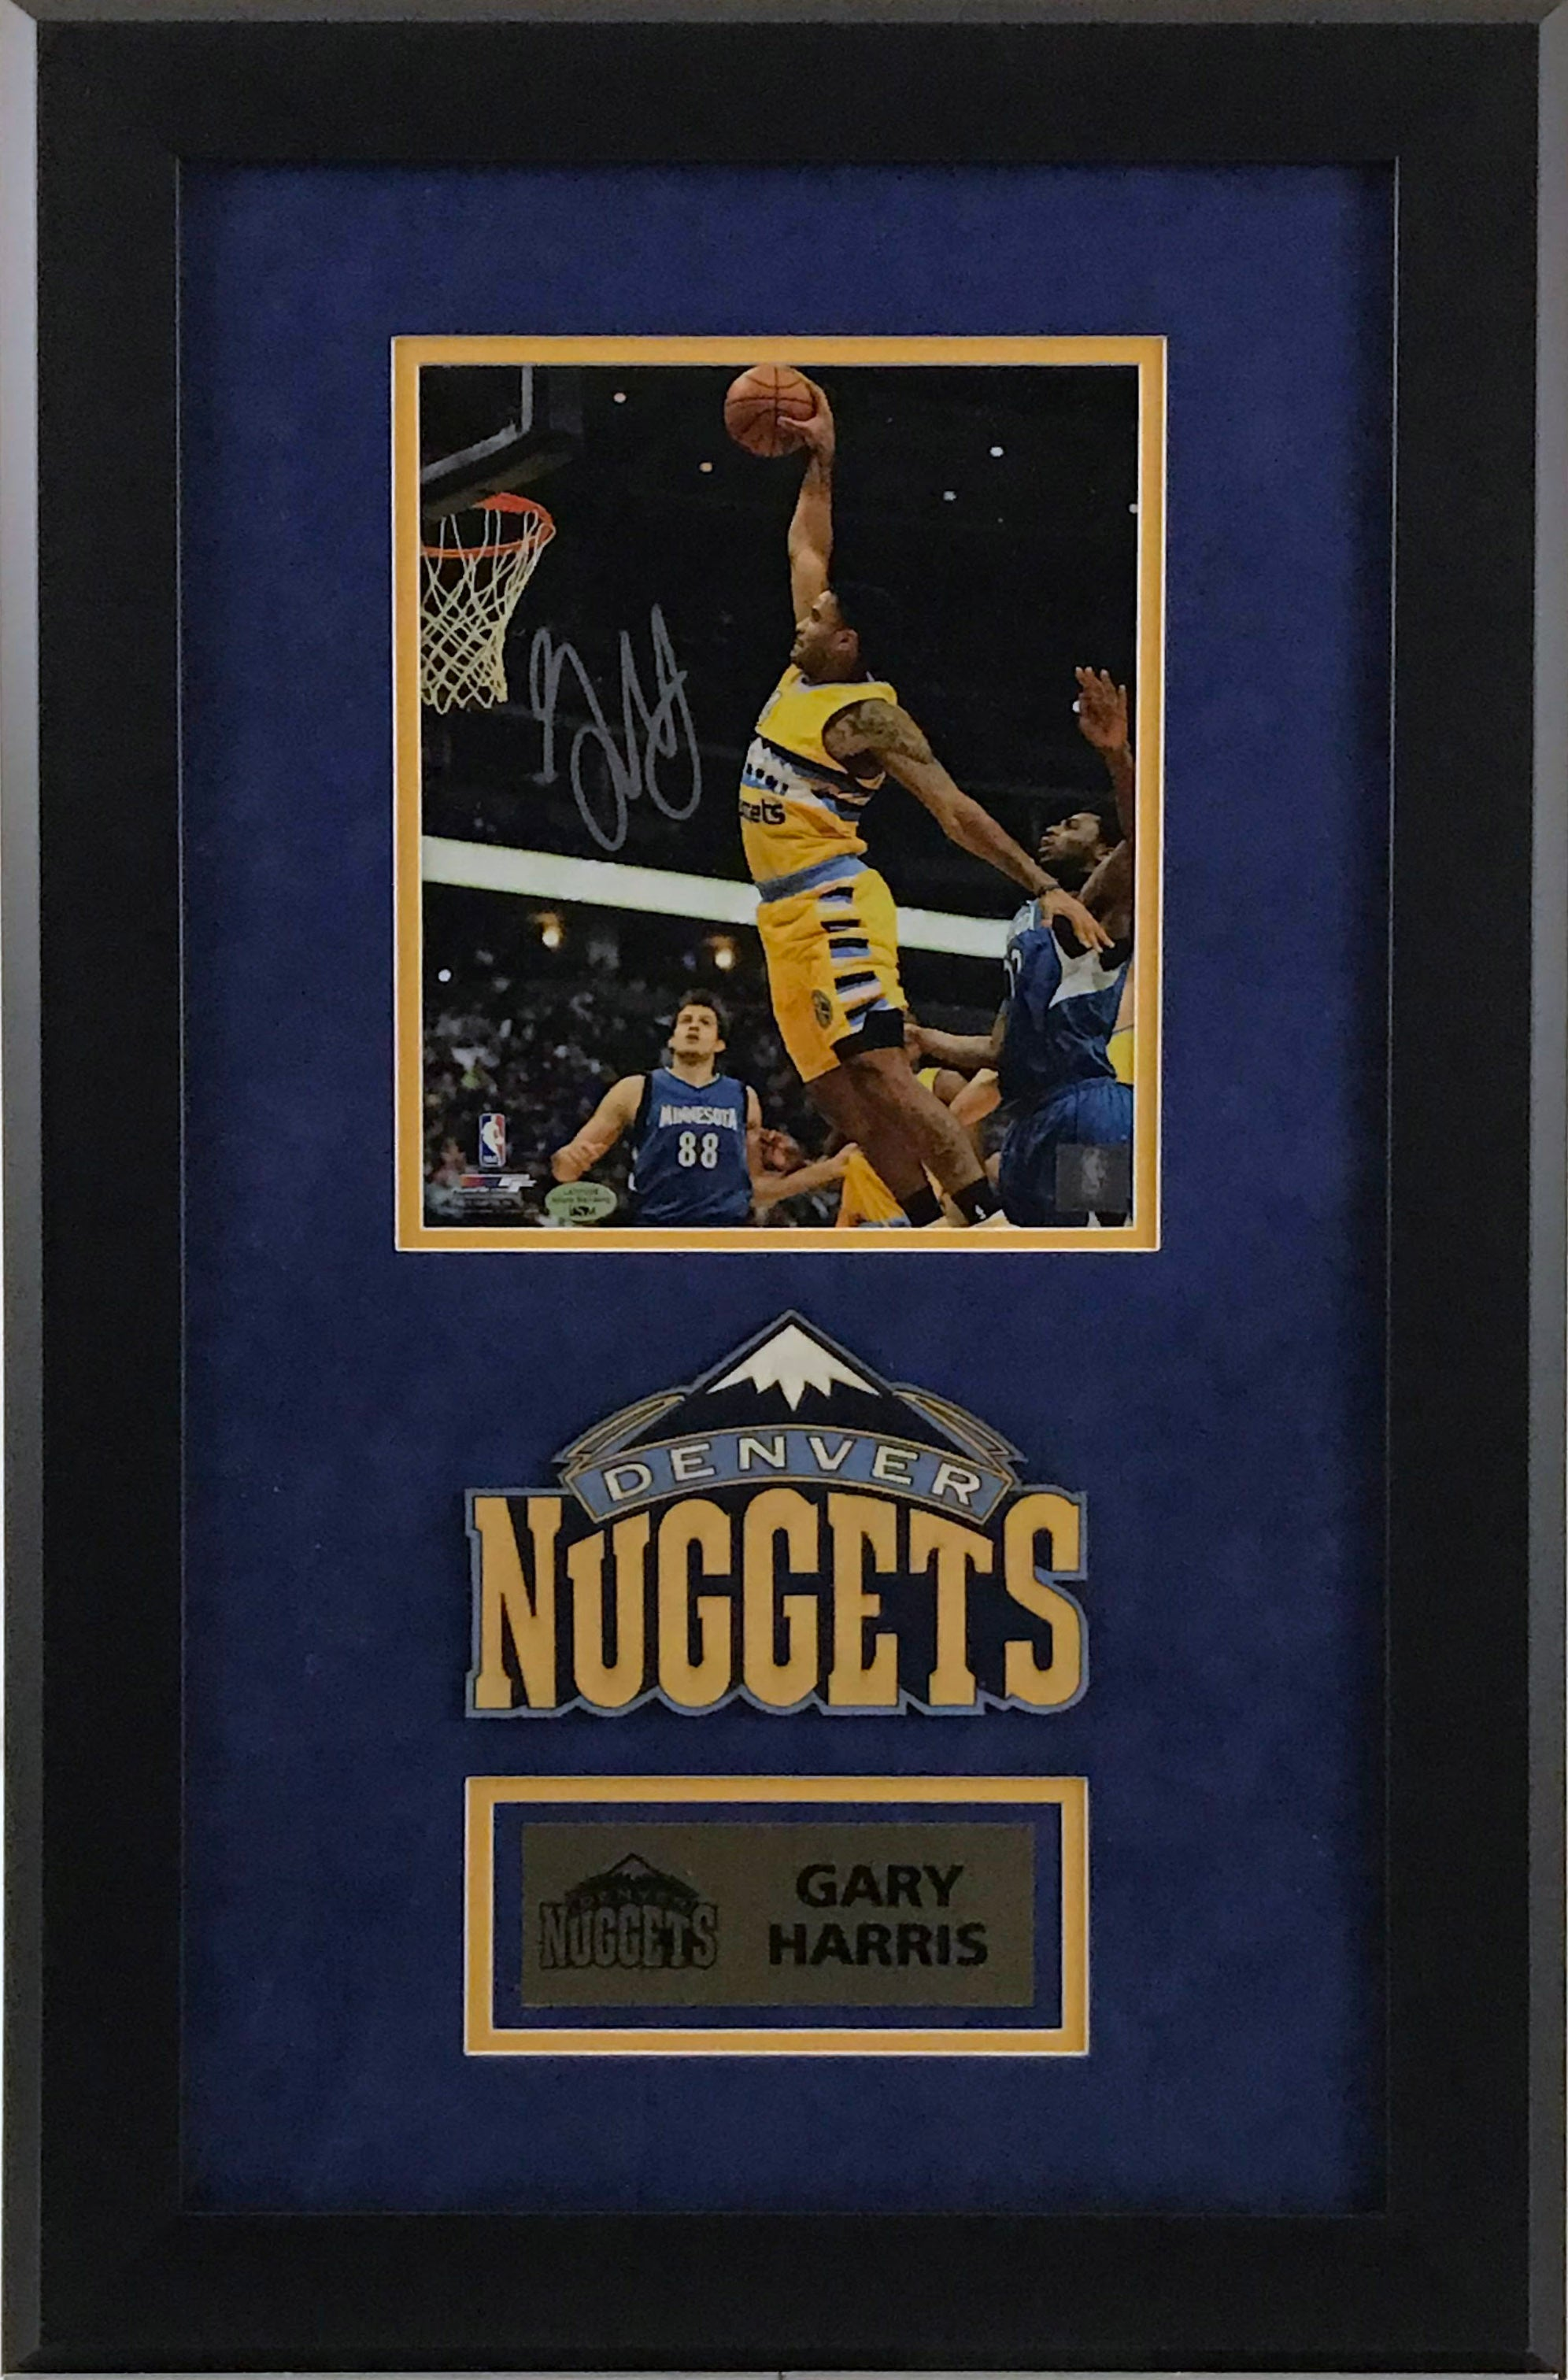 Gary Harris Signed 8x10 Photo - Deluxe Frame